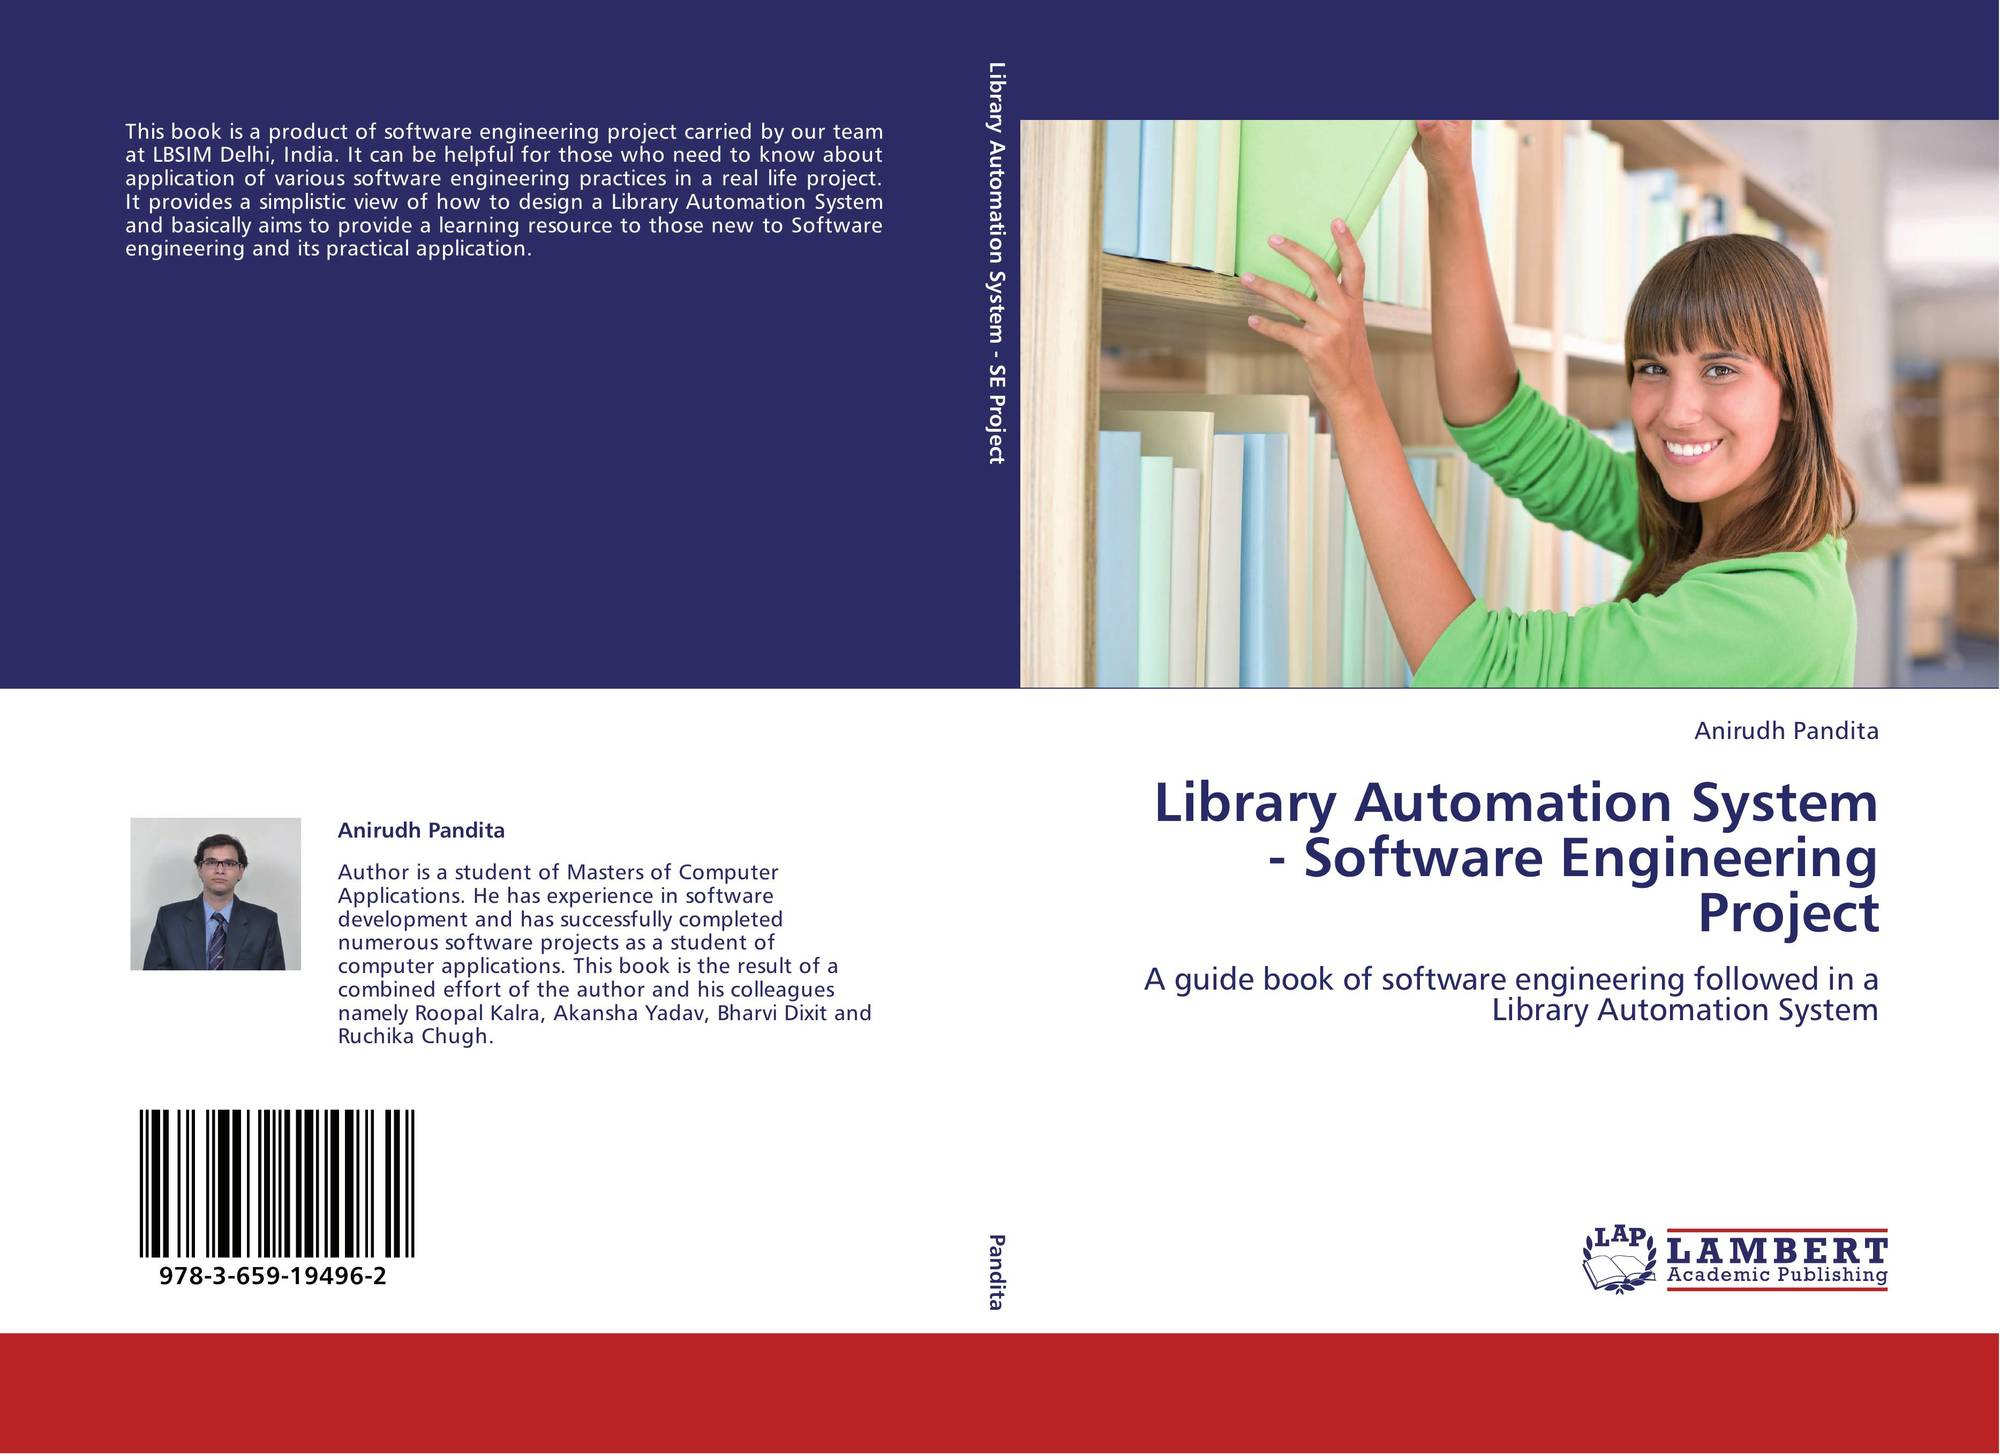 Library Automation System Software Engineering Project 978 3 659 19496 2 3659194964 9783659194962 By Anirudh Pandita